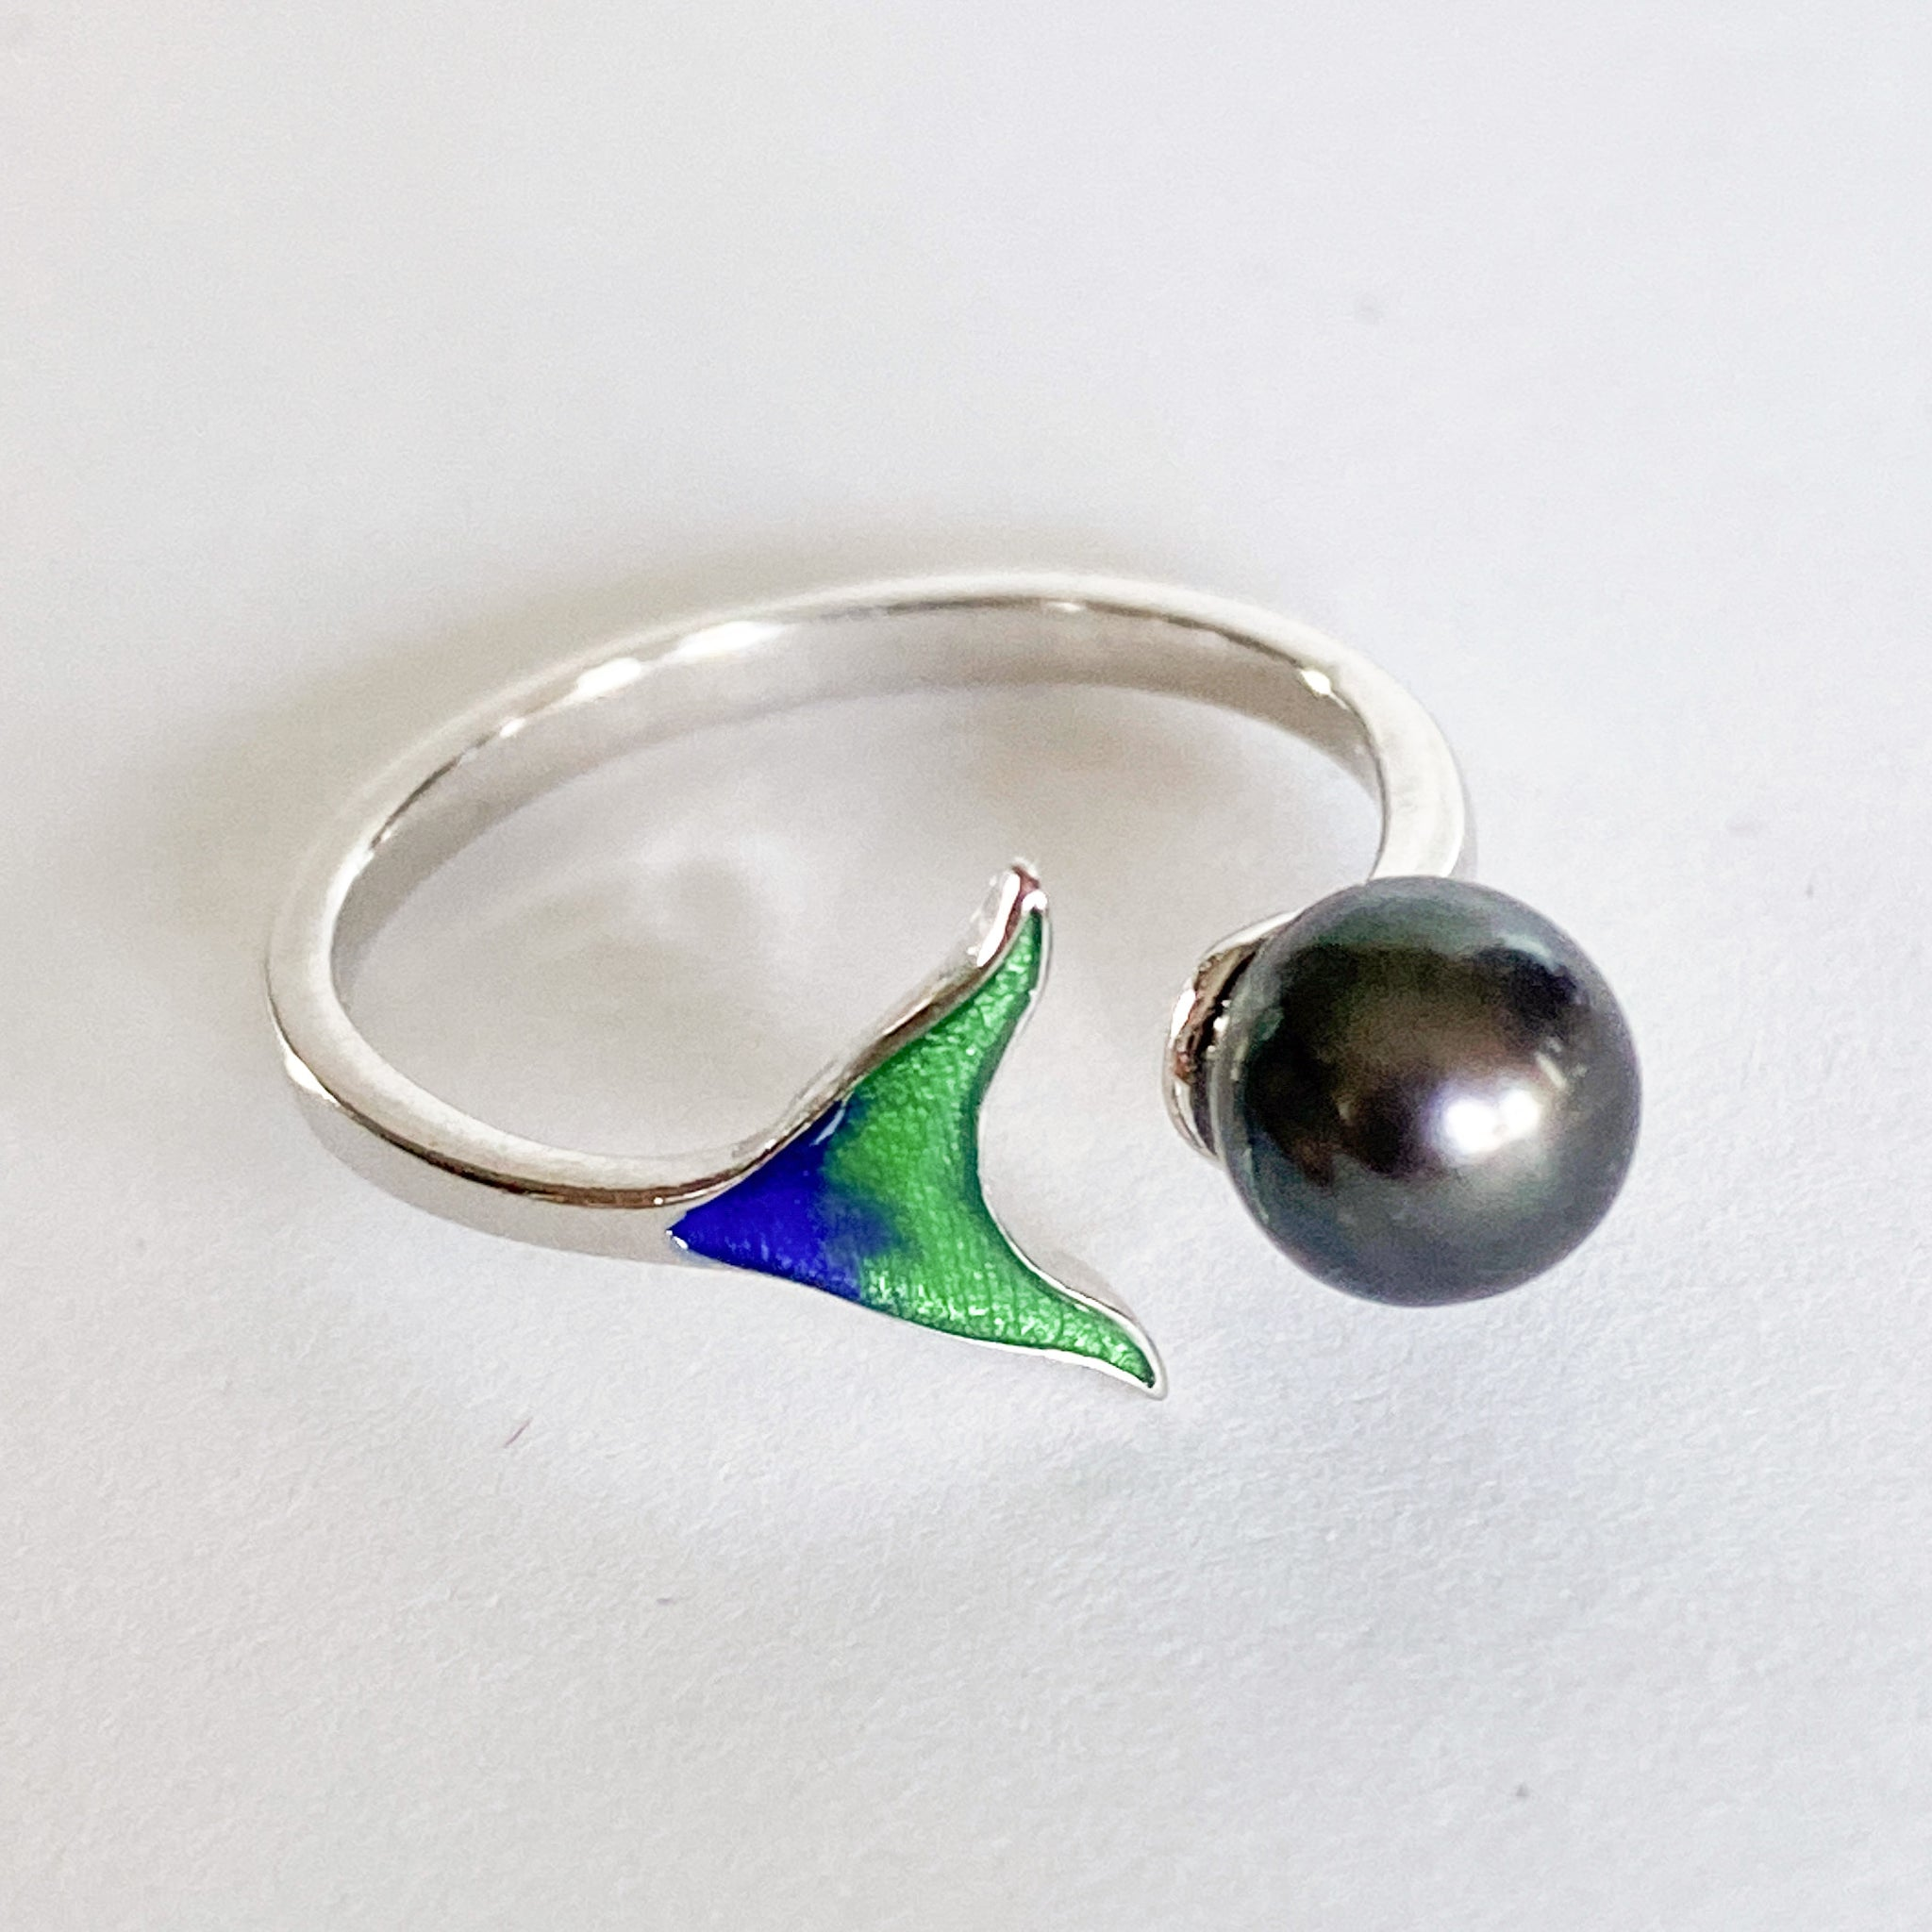 Adjustable sterling silver genuine pearl ring